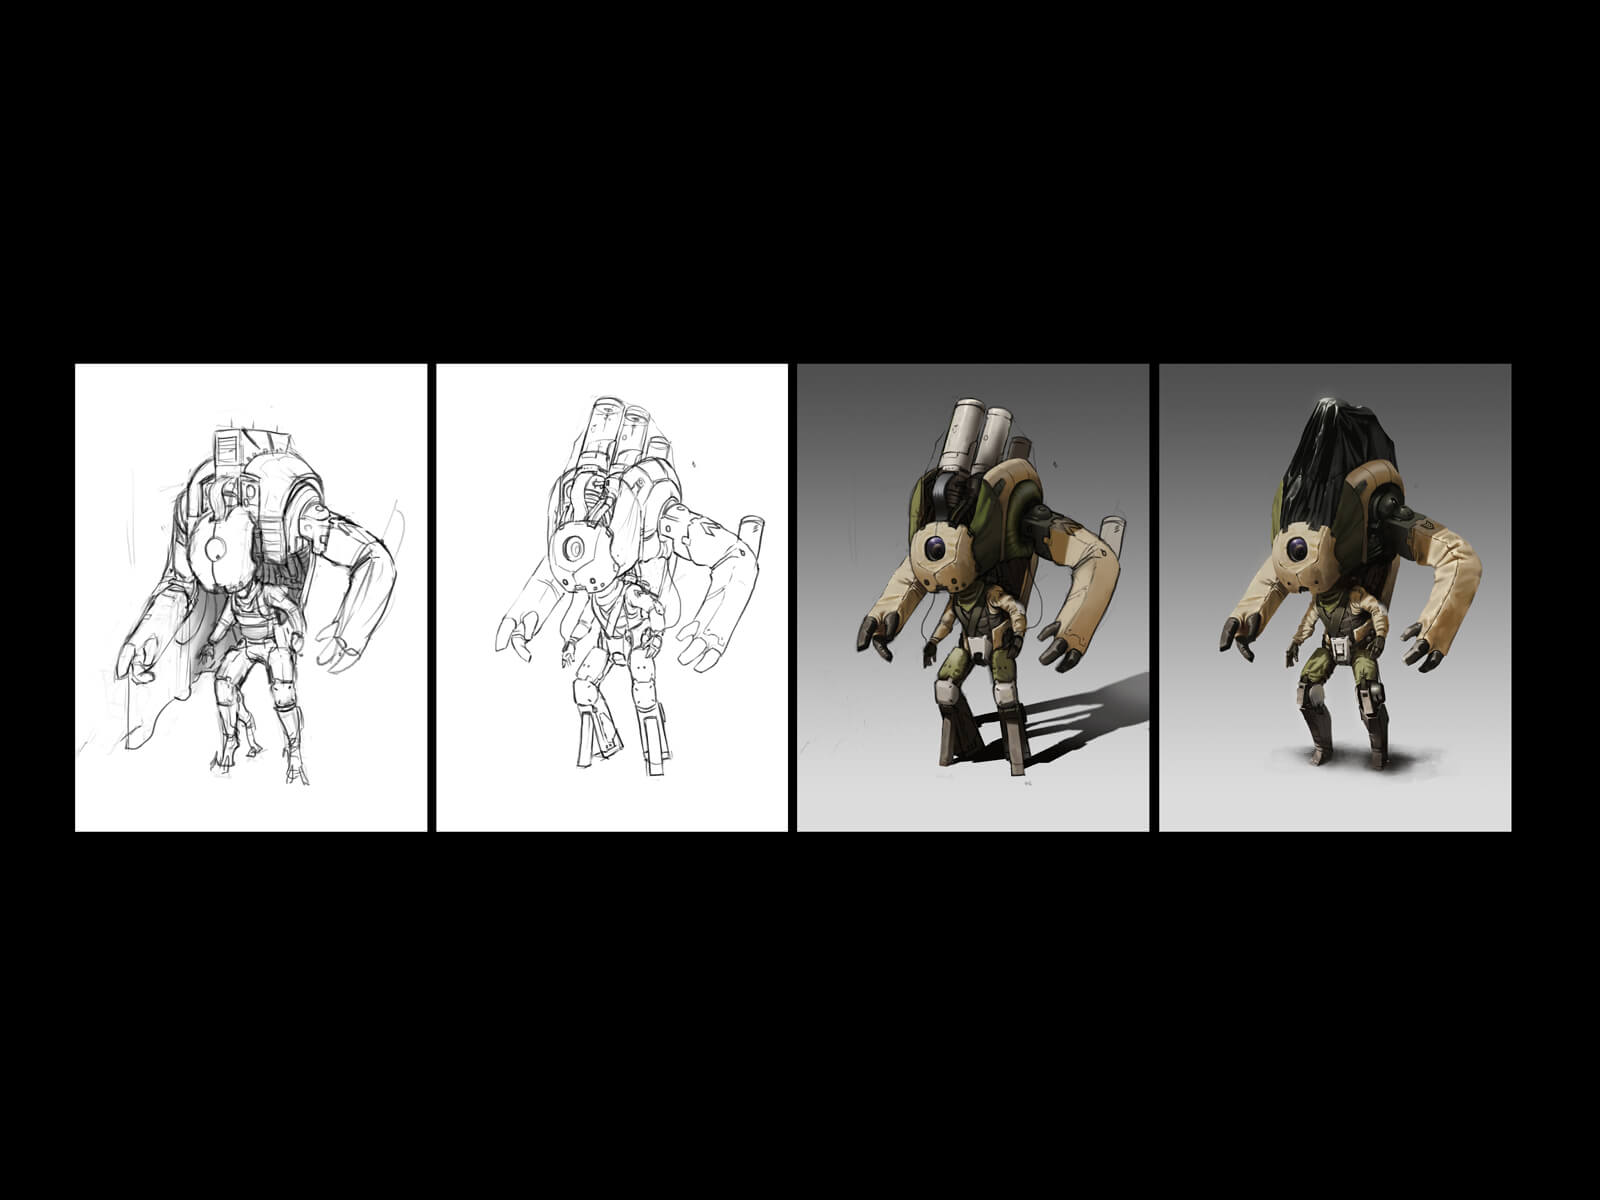 four views of a robot-human hybrid character from black and white sketch to final digital painting